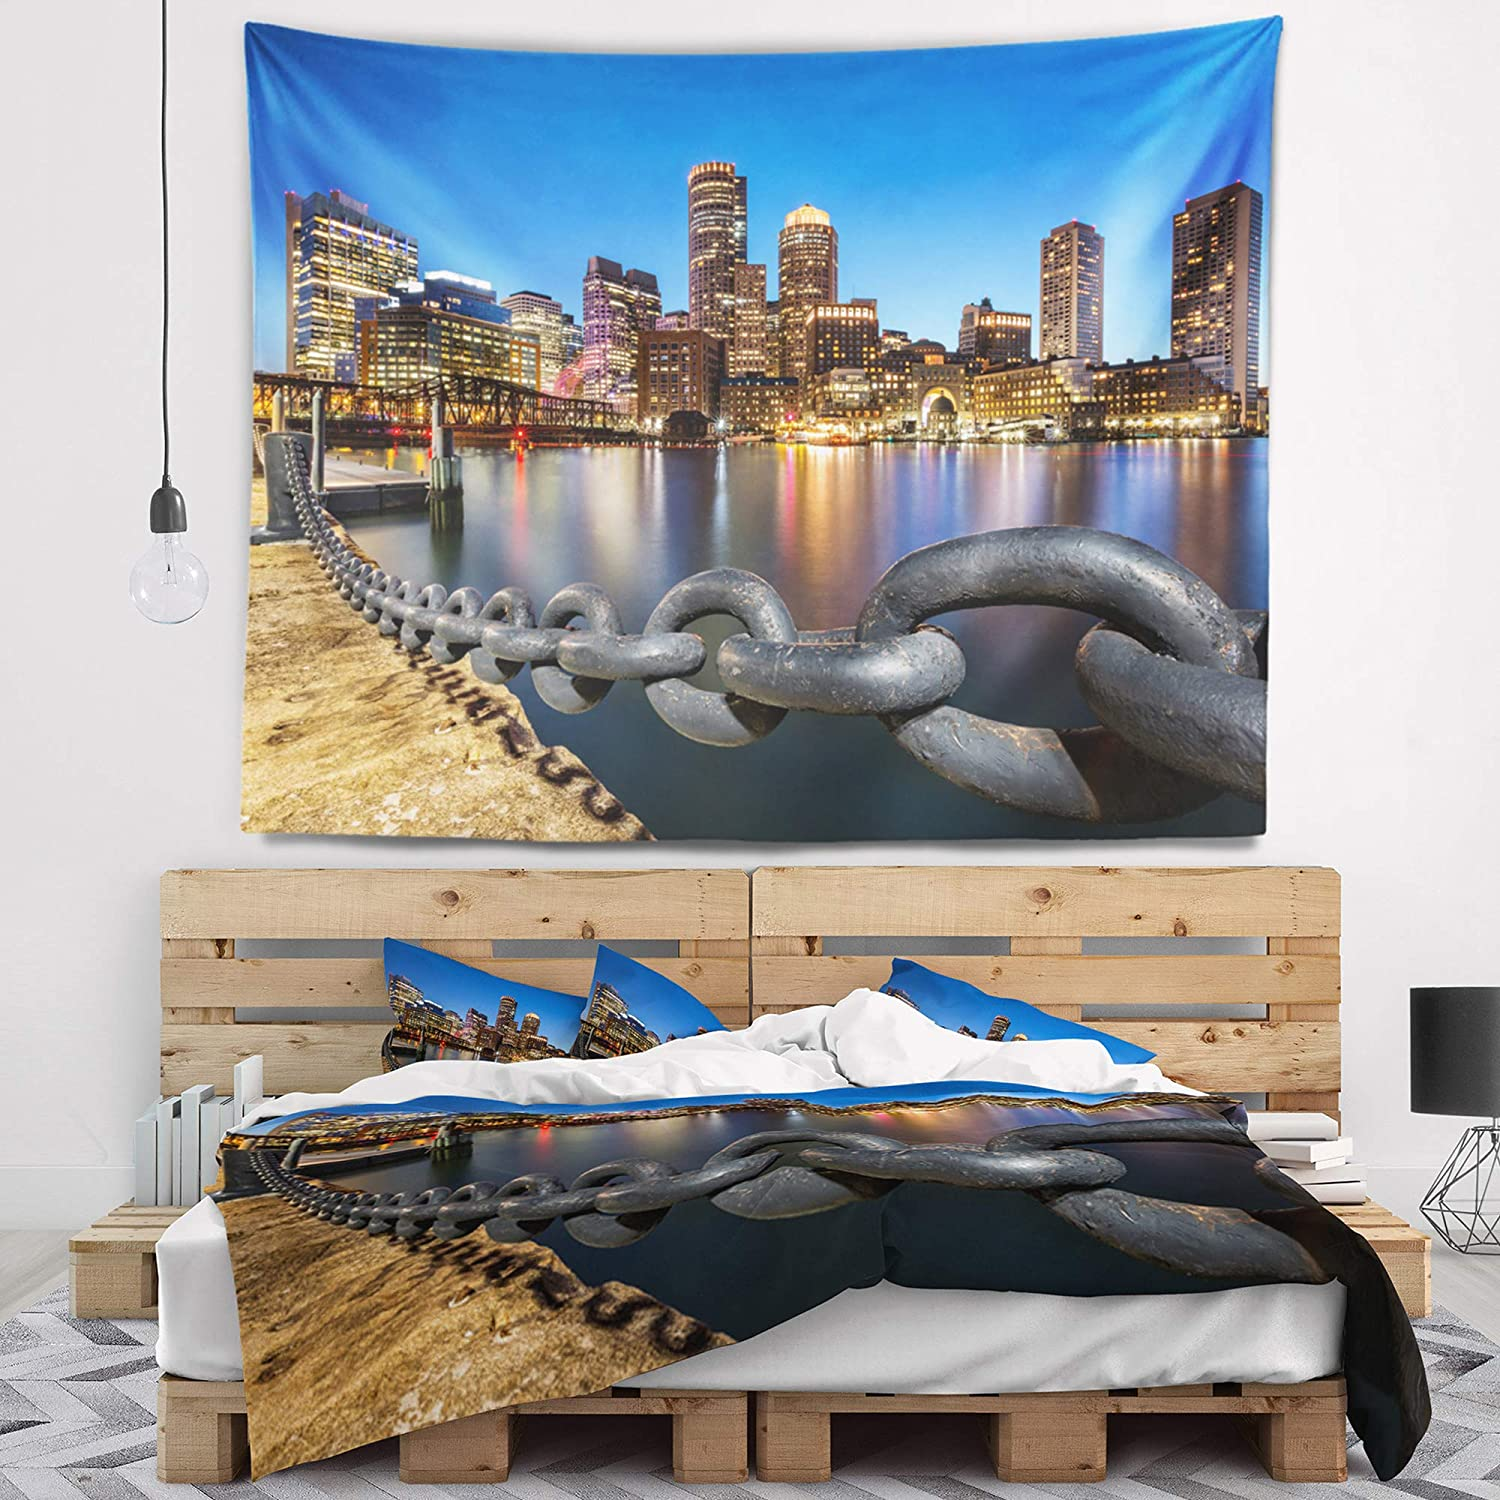 X 68 In 80 In Created On Lightweight Polyester Fabric Designart Tap8625 80 68 Boston Skyline At Dusk Cityscape Photo Blanket Décor Art For Home And Office Wall Tapestry X Large